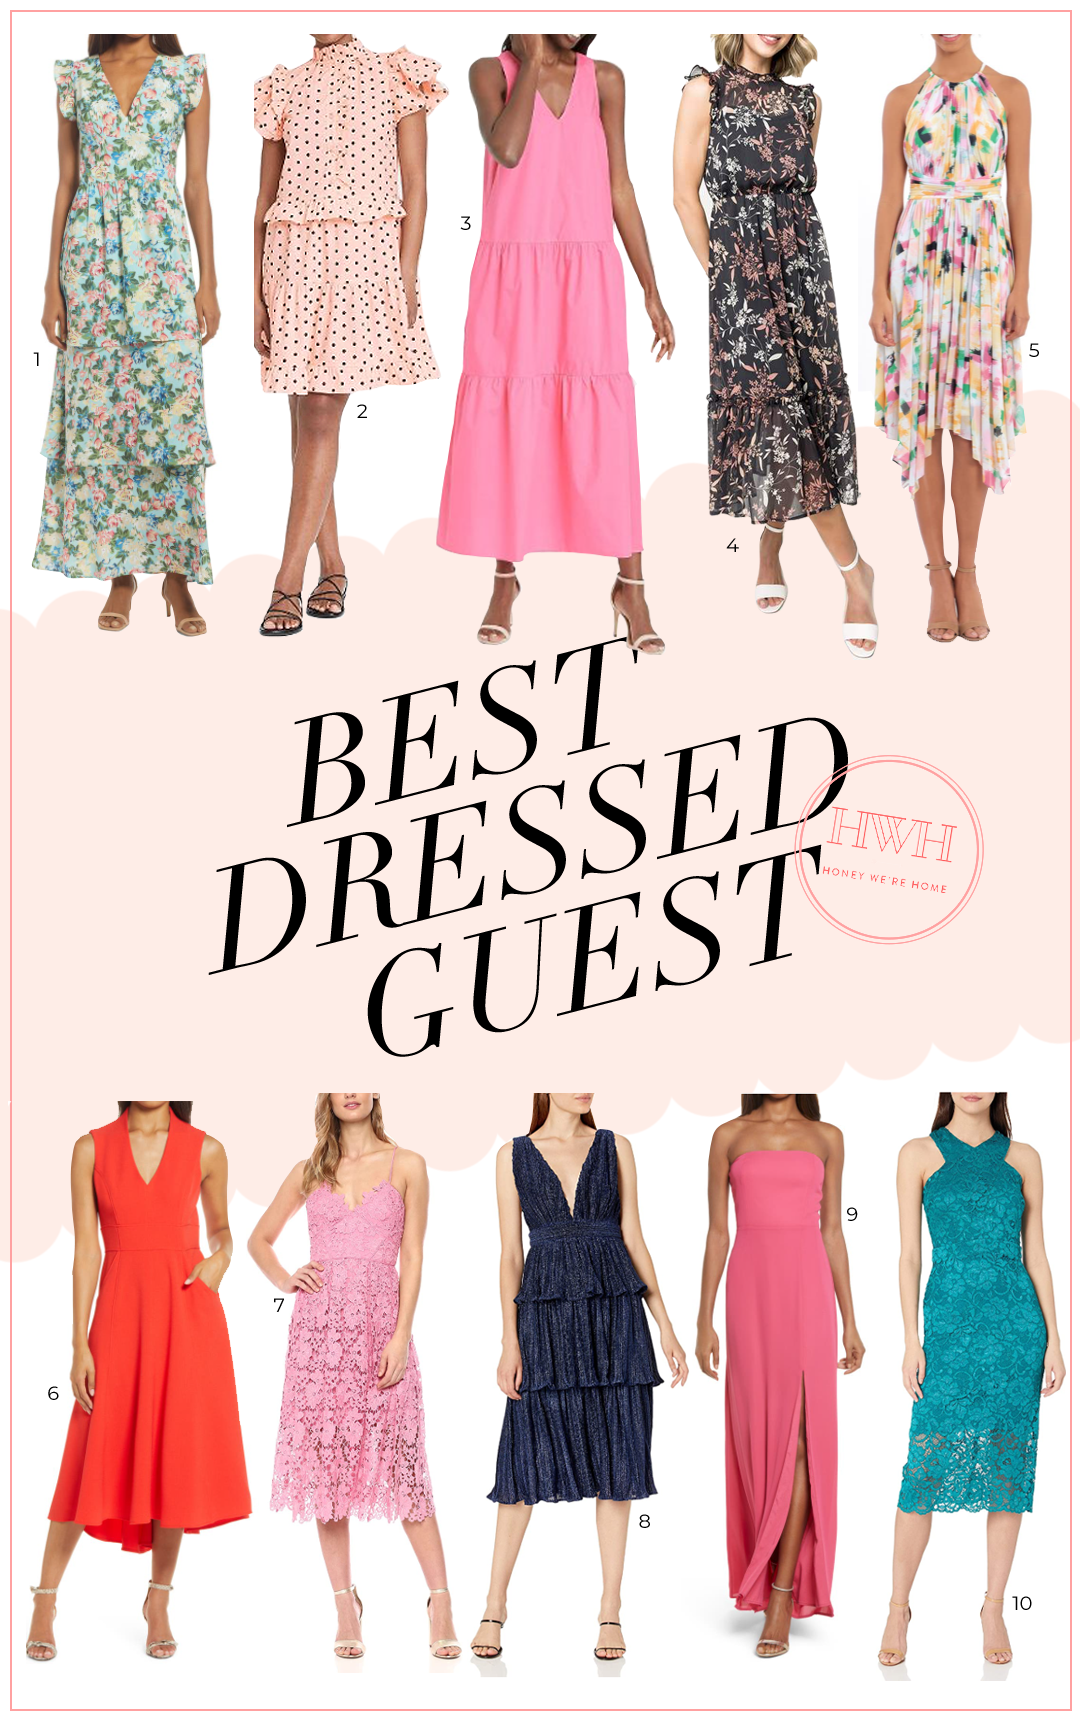 Best Dressed Wedding Guest & Vacation Style